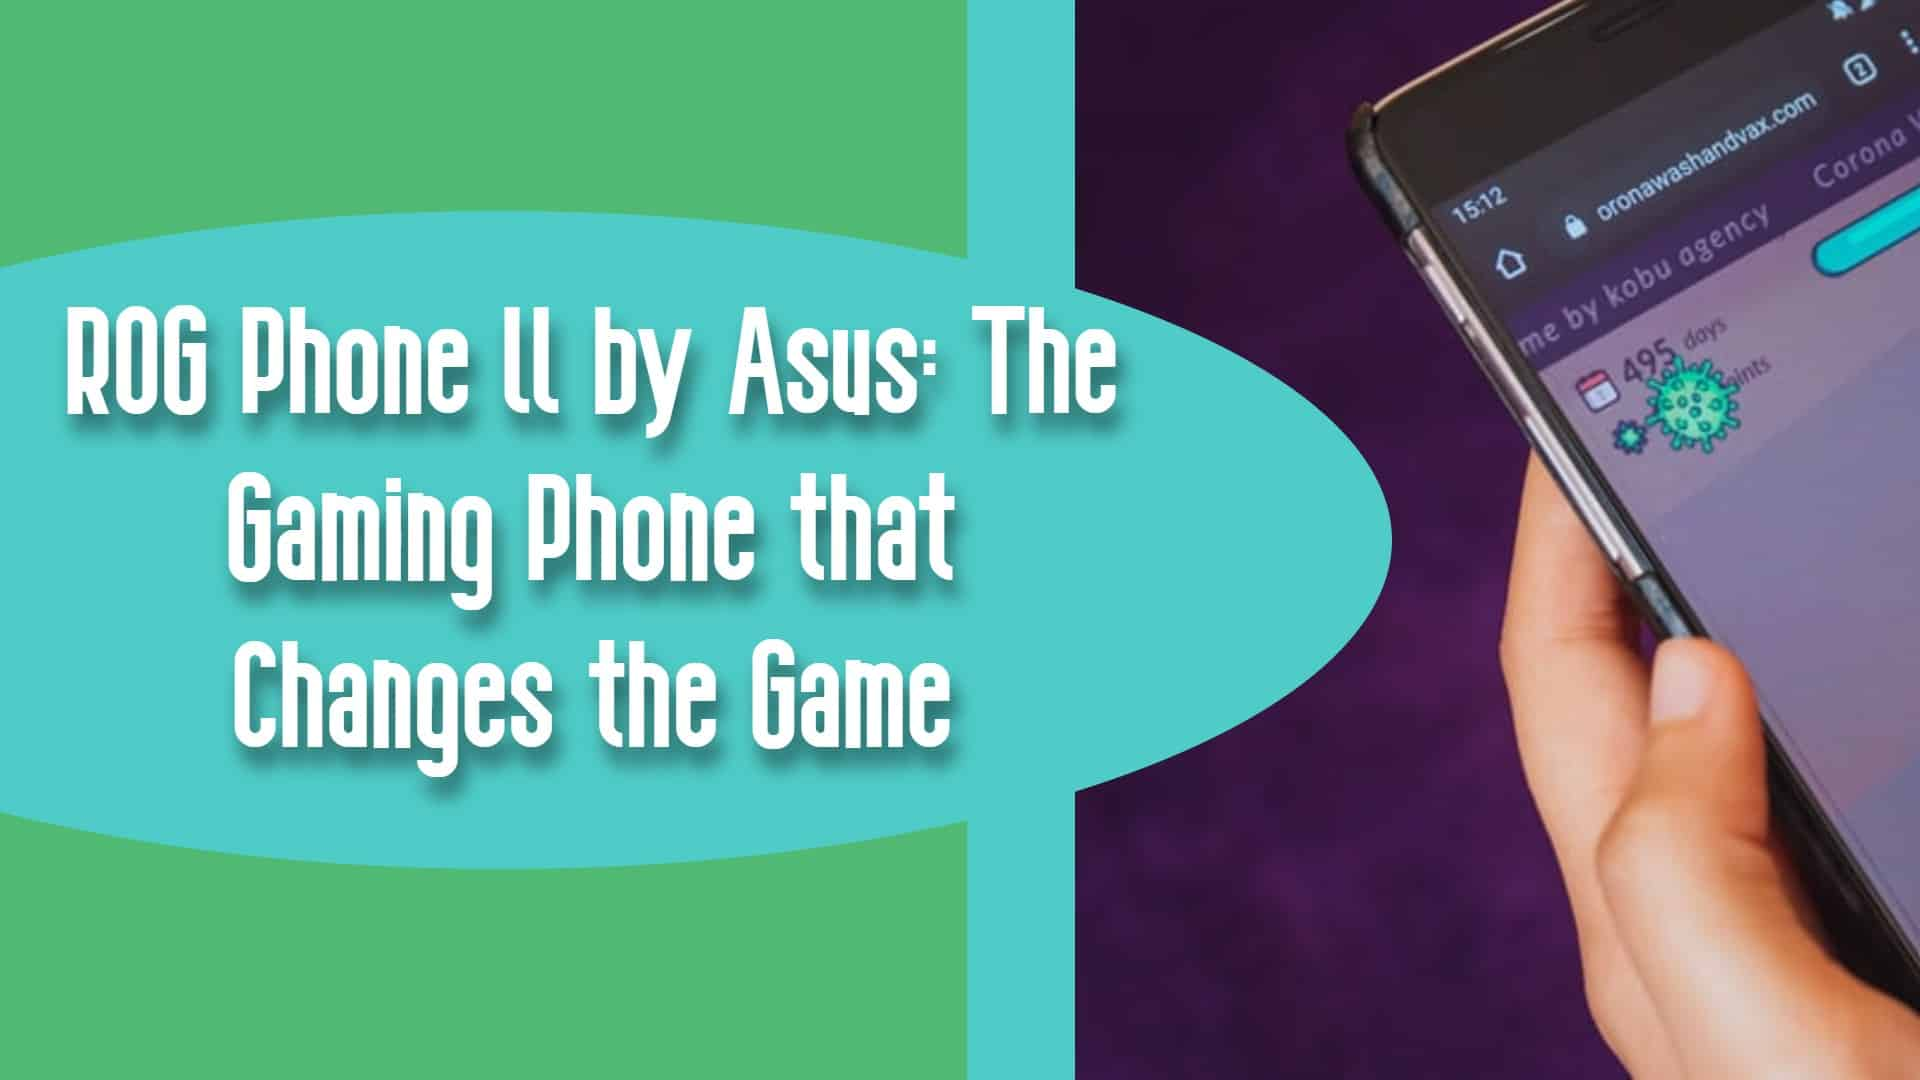 ROG Phone ll by Asus: The Gaming Phone that Changes the Game